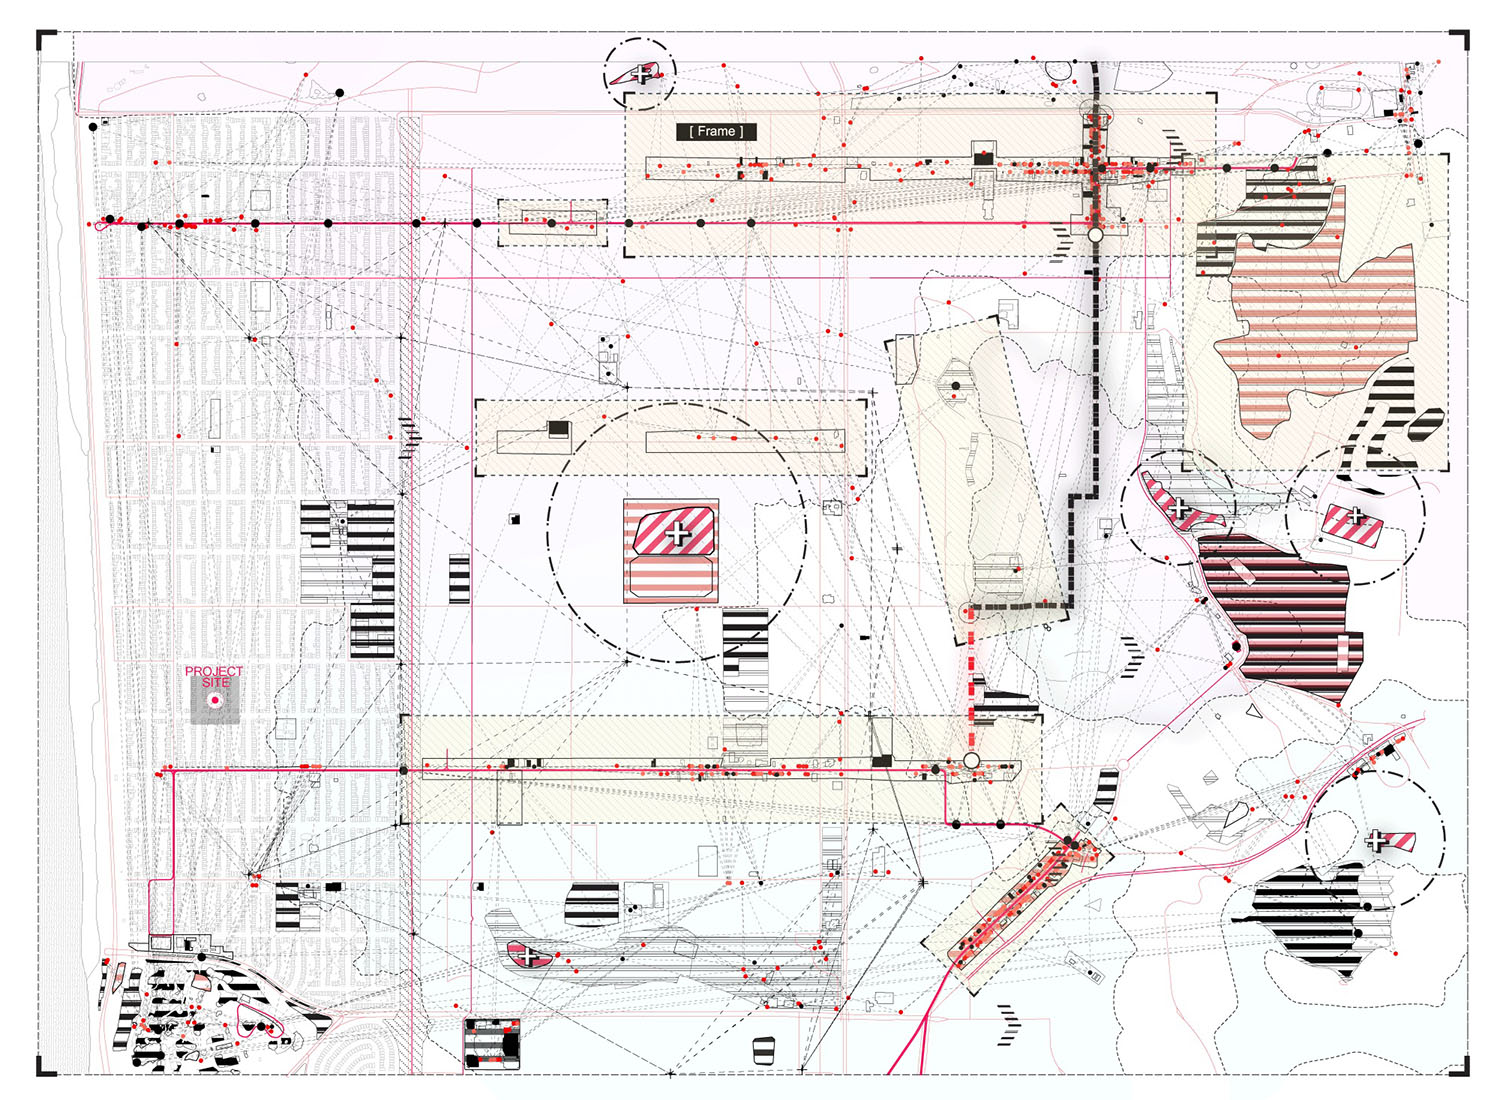 A digital plan of an architectural construction